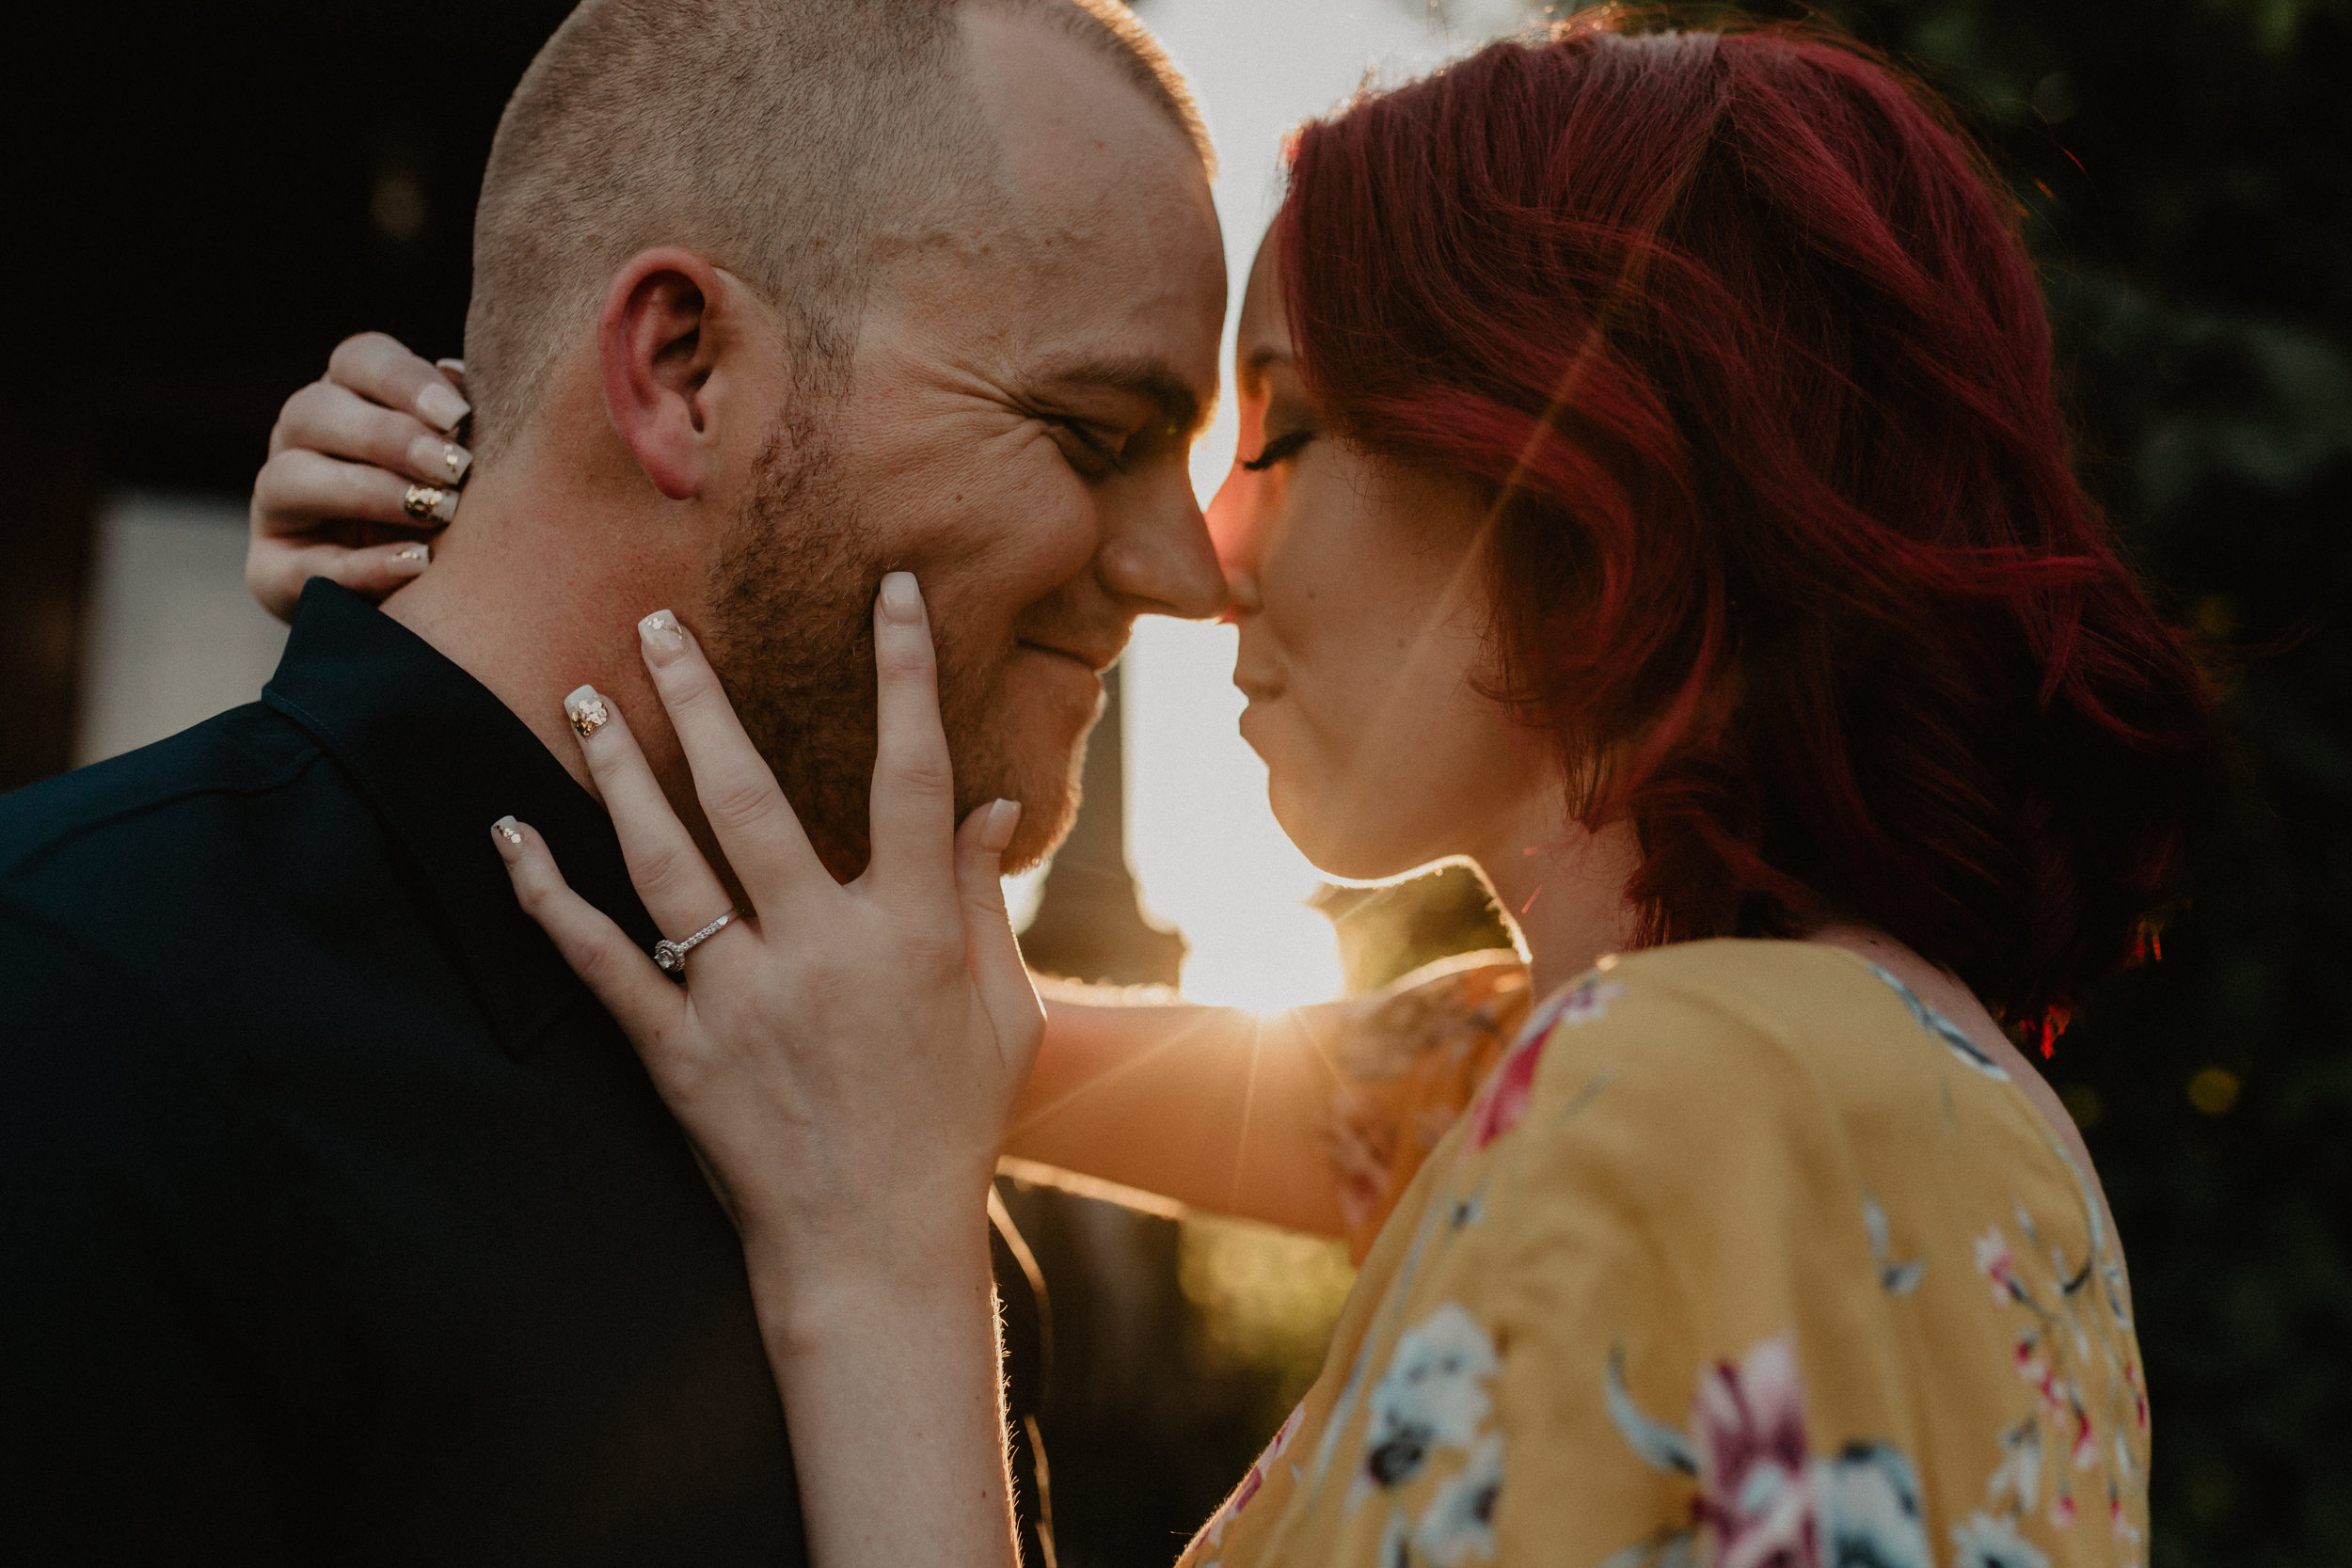 downtown-troy-engagement-session-8.jpg